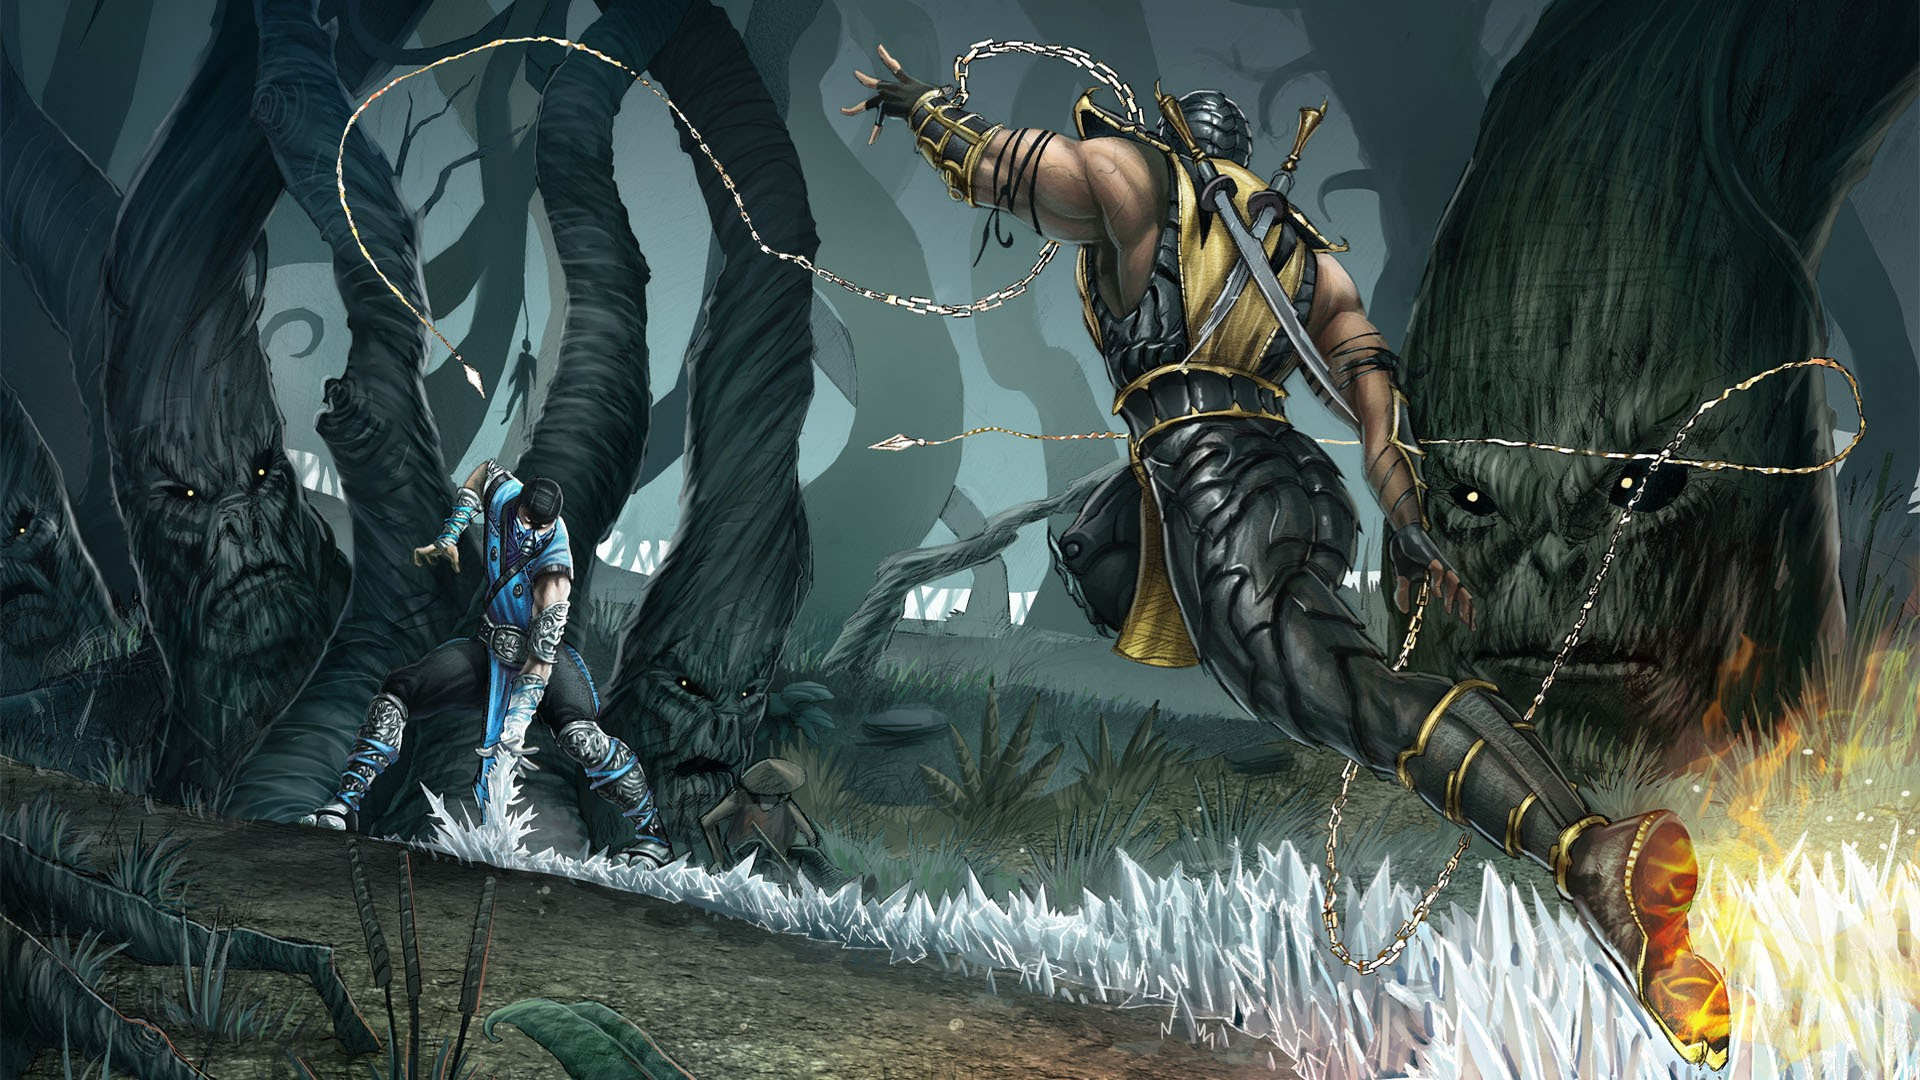 Mortal Kombat Wallpaper Sub Zero And Scorpion Mortal Kombat